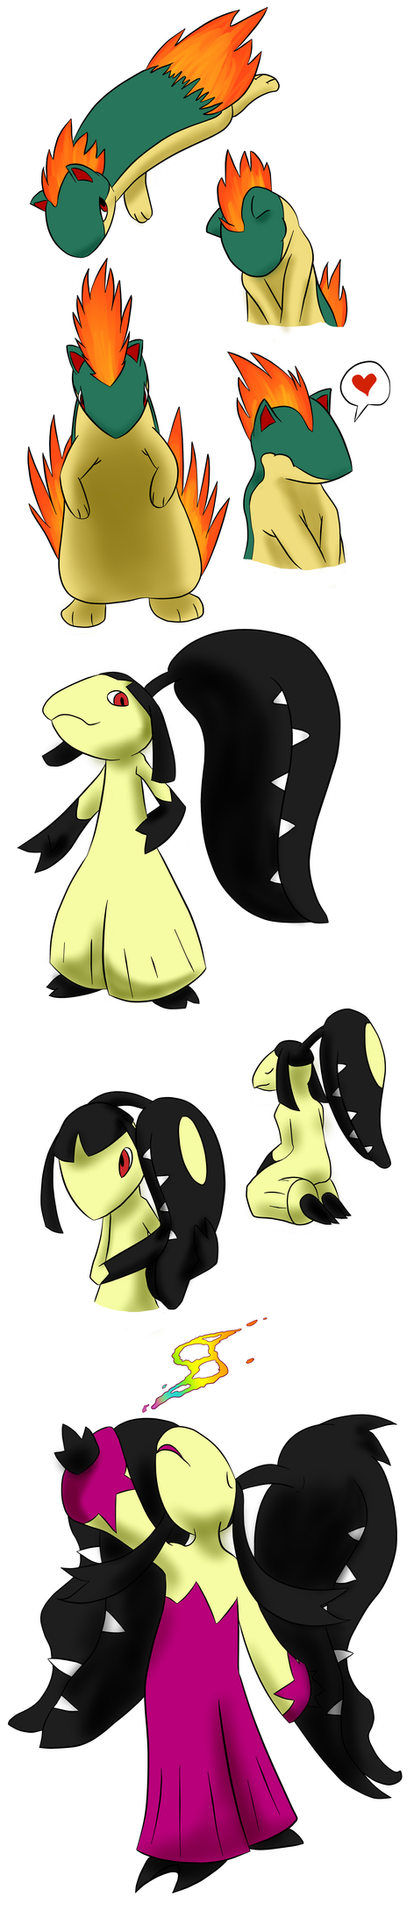 Pokemon Pratice - Quilava Mawile by MrTwinklehead